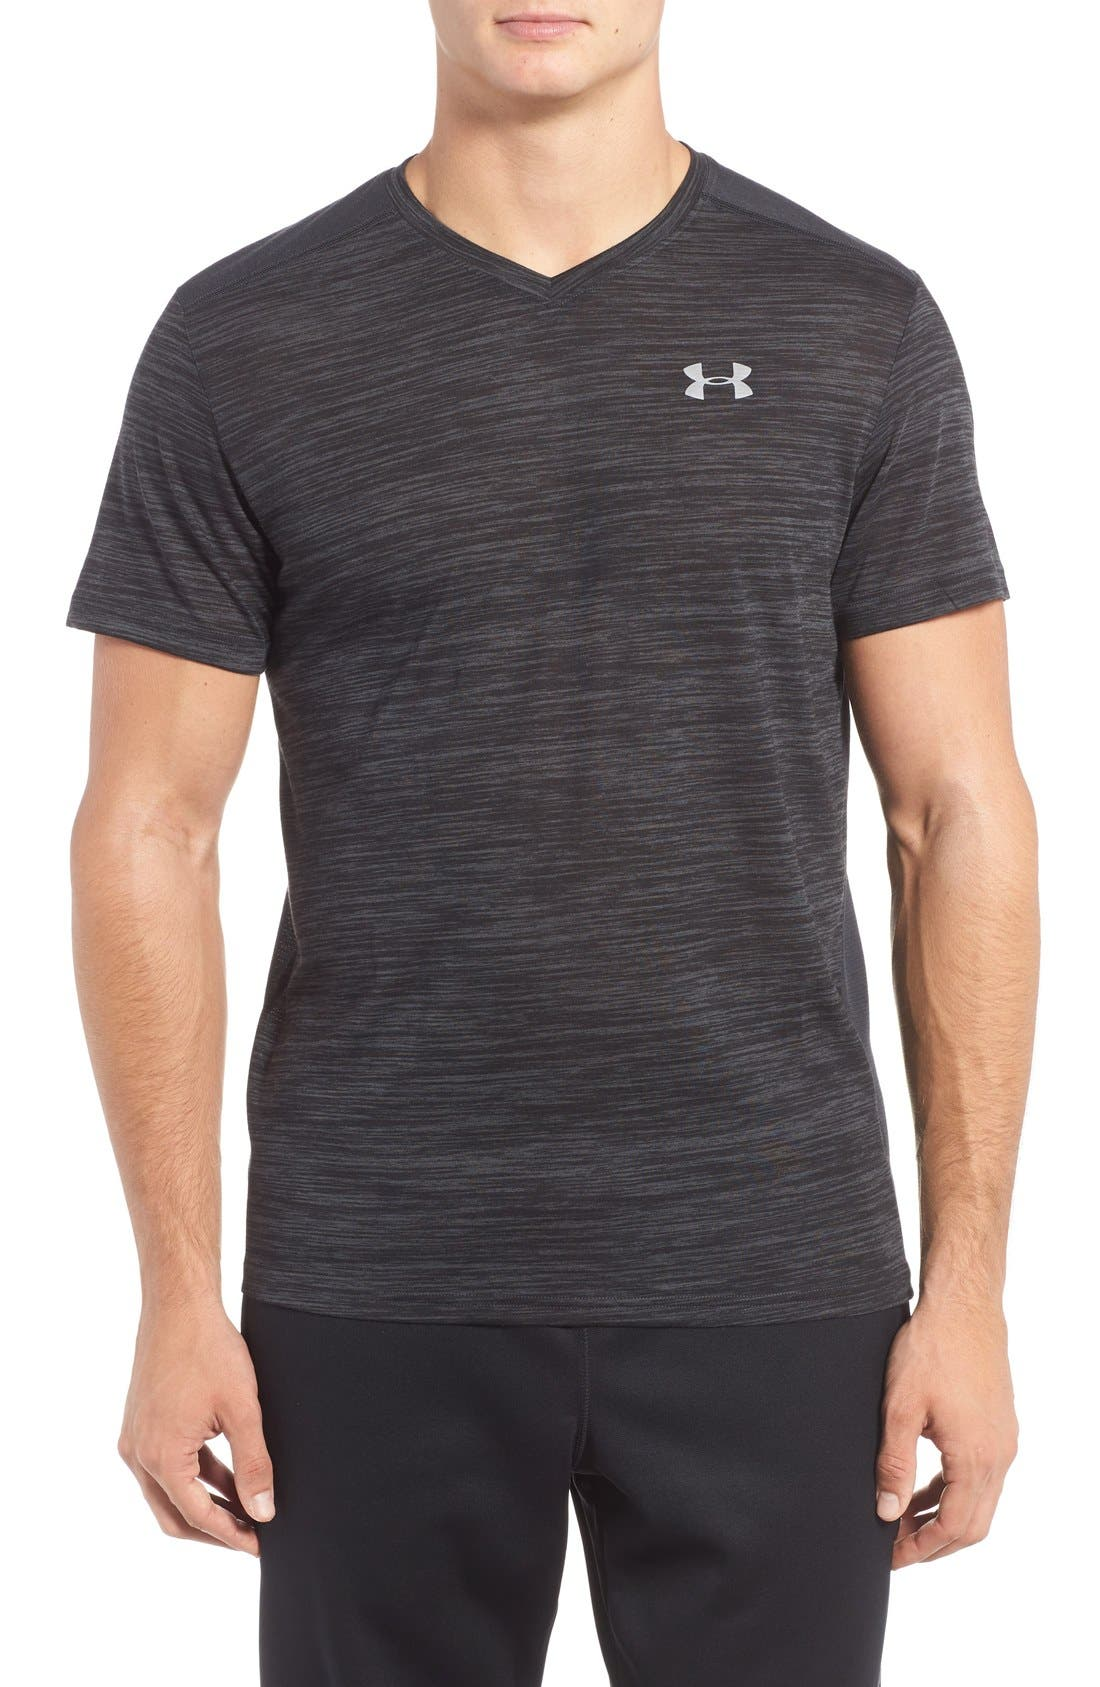 'Streaker Run' Microthread V-Neck T-Shirt,                         Main,                         color, Anthracite/ Reflective Silver